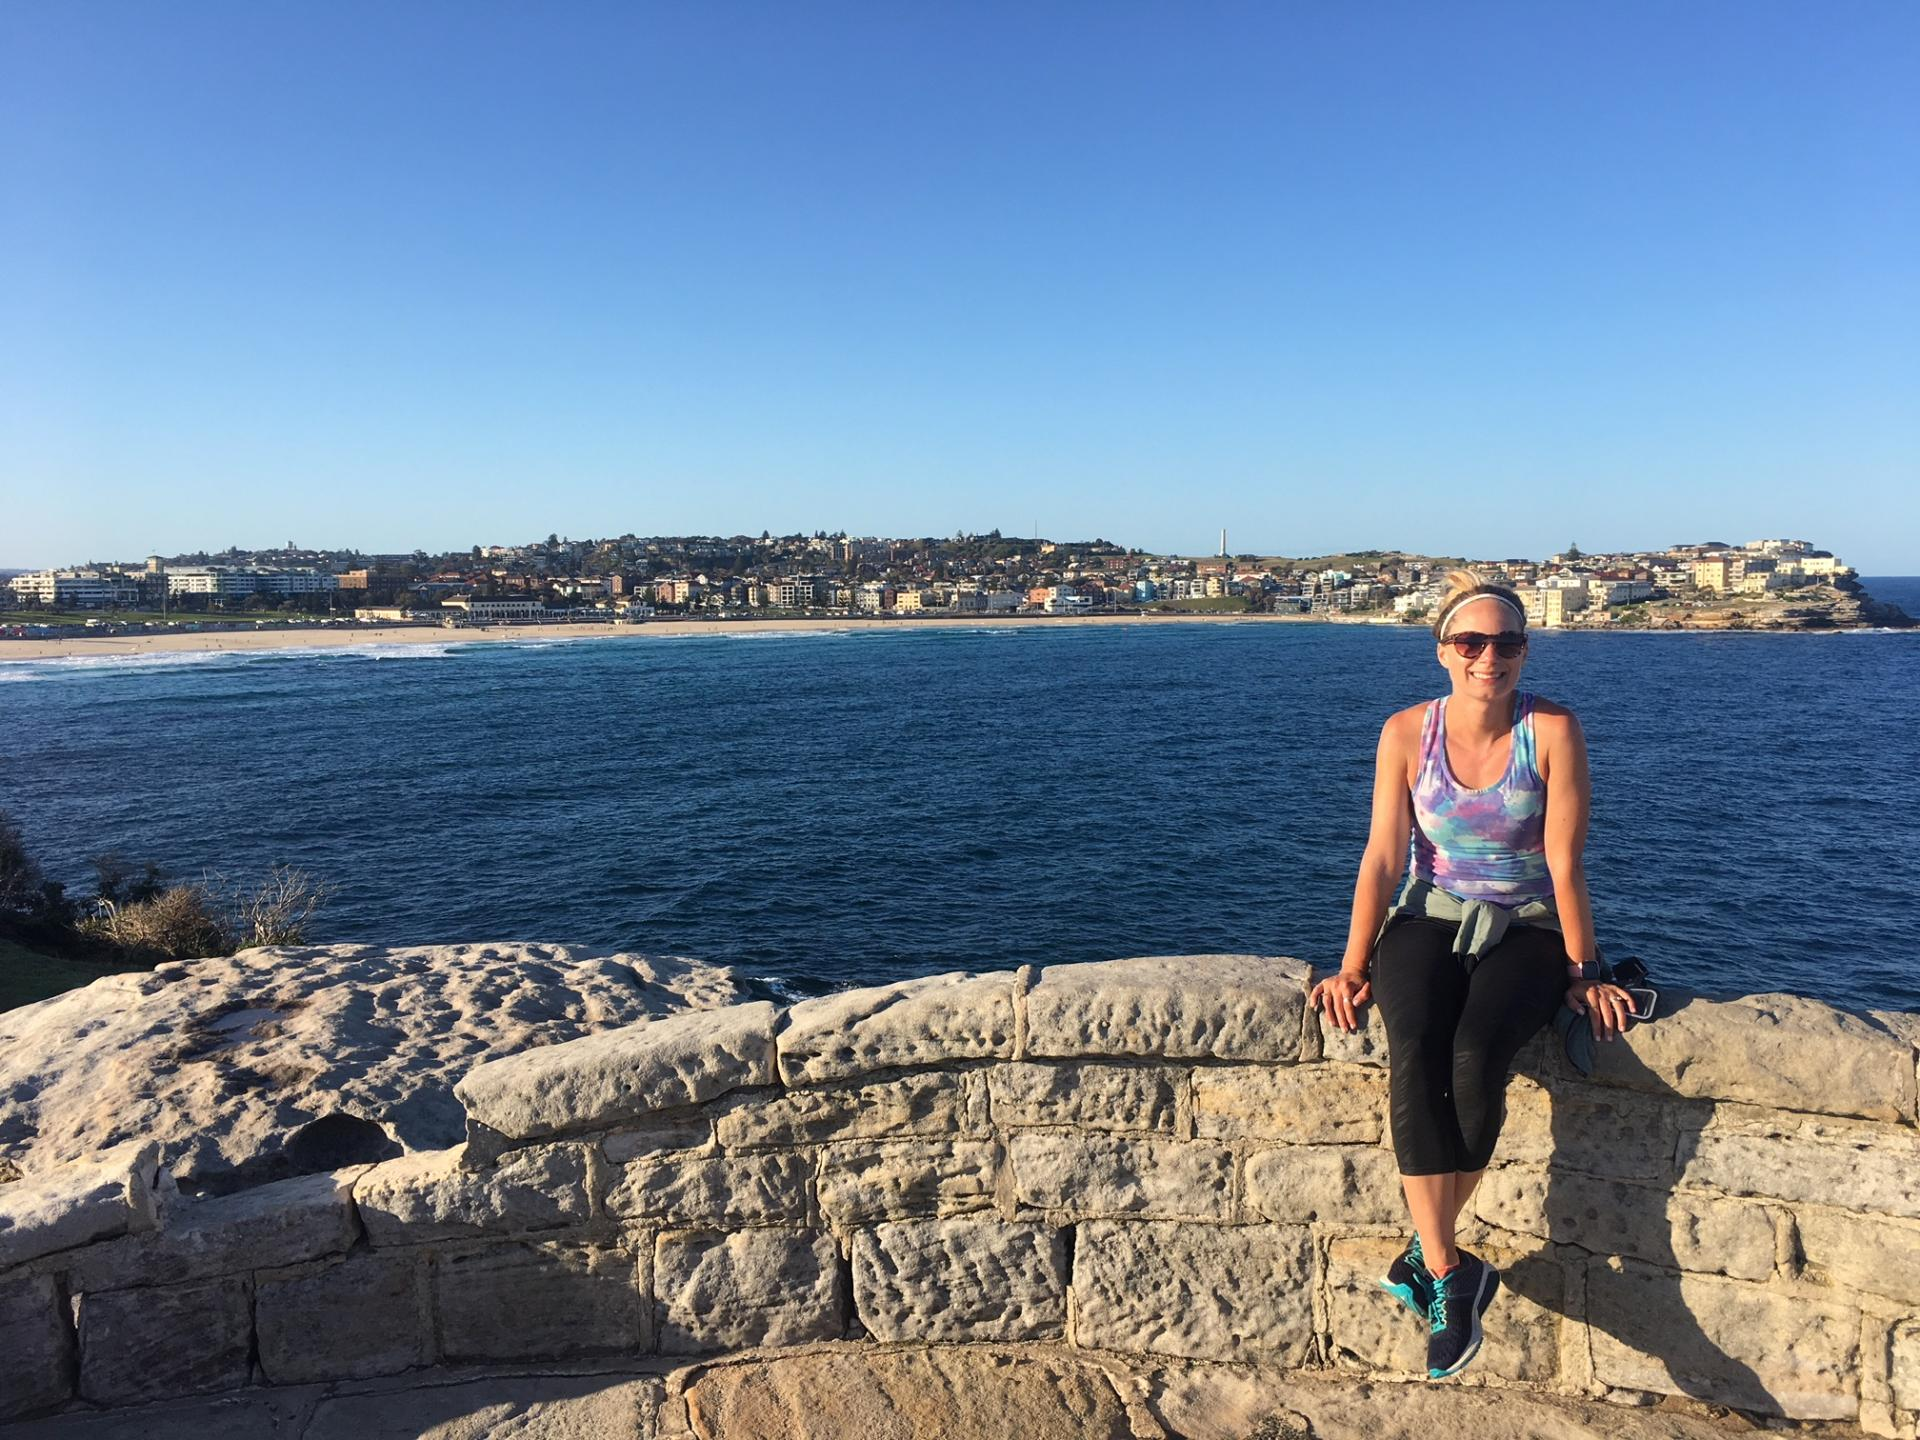 Running from Bondi Beach to Coogee